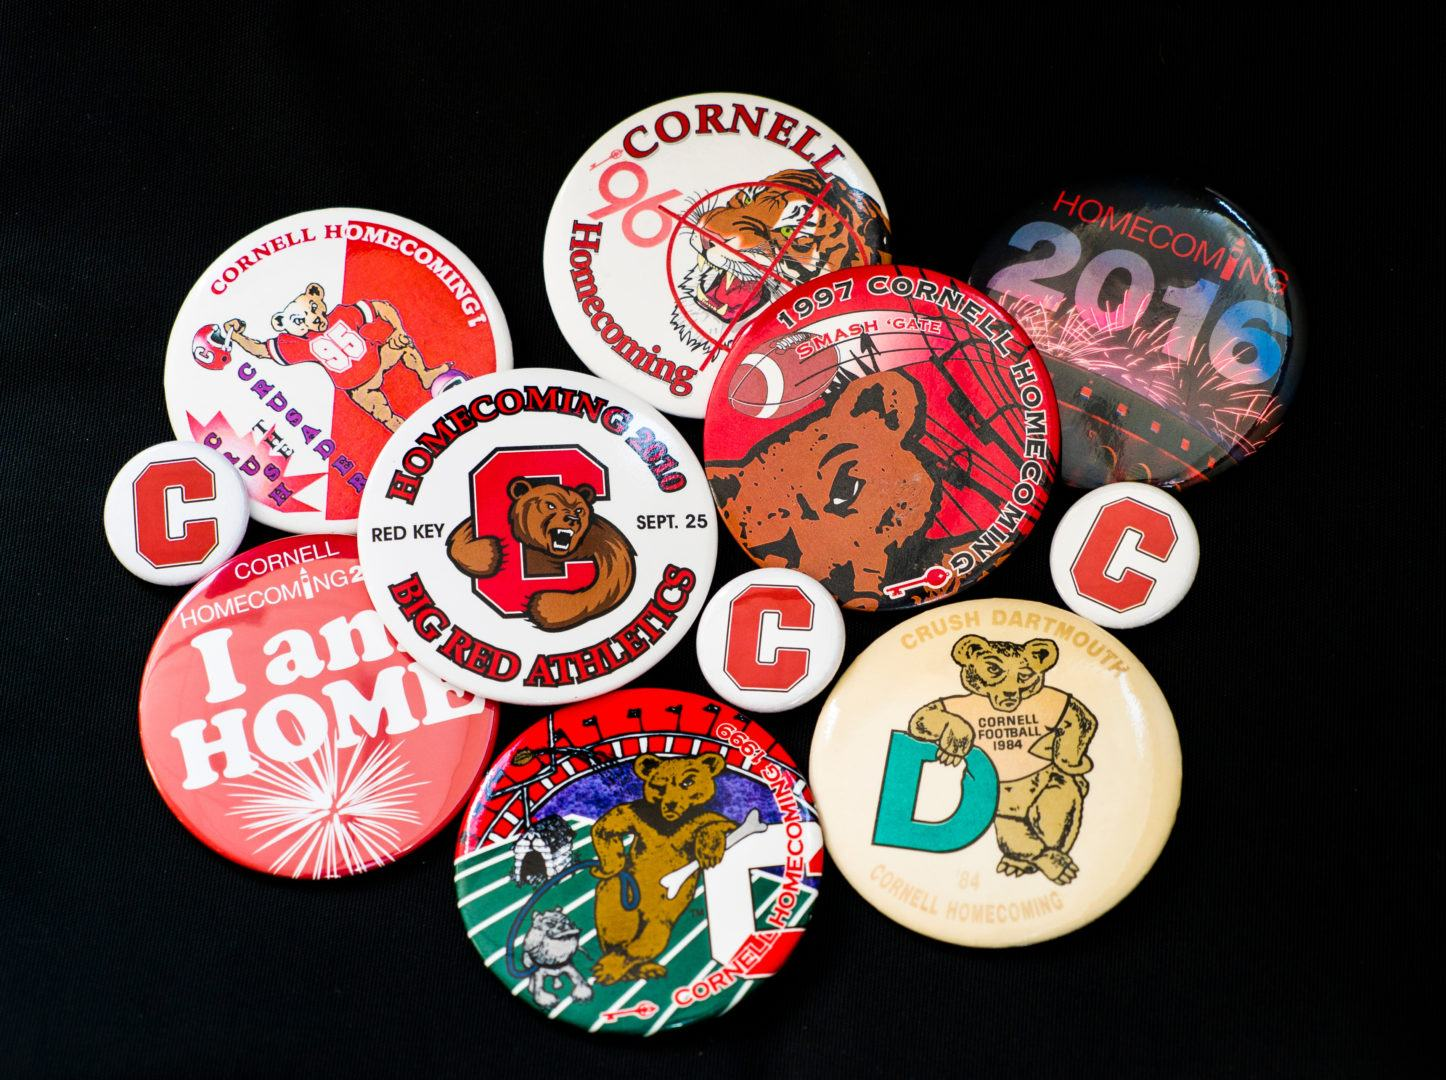 Past buttons from Cornell Homecoming